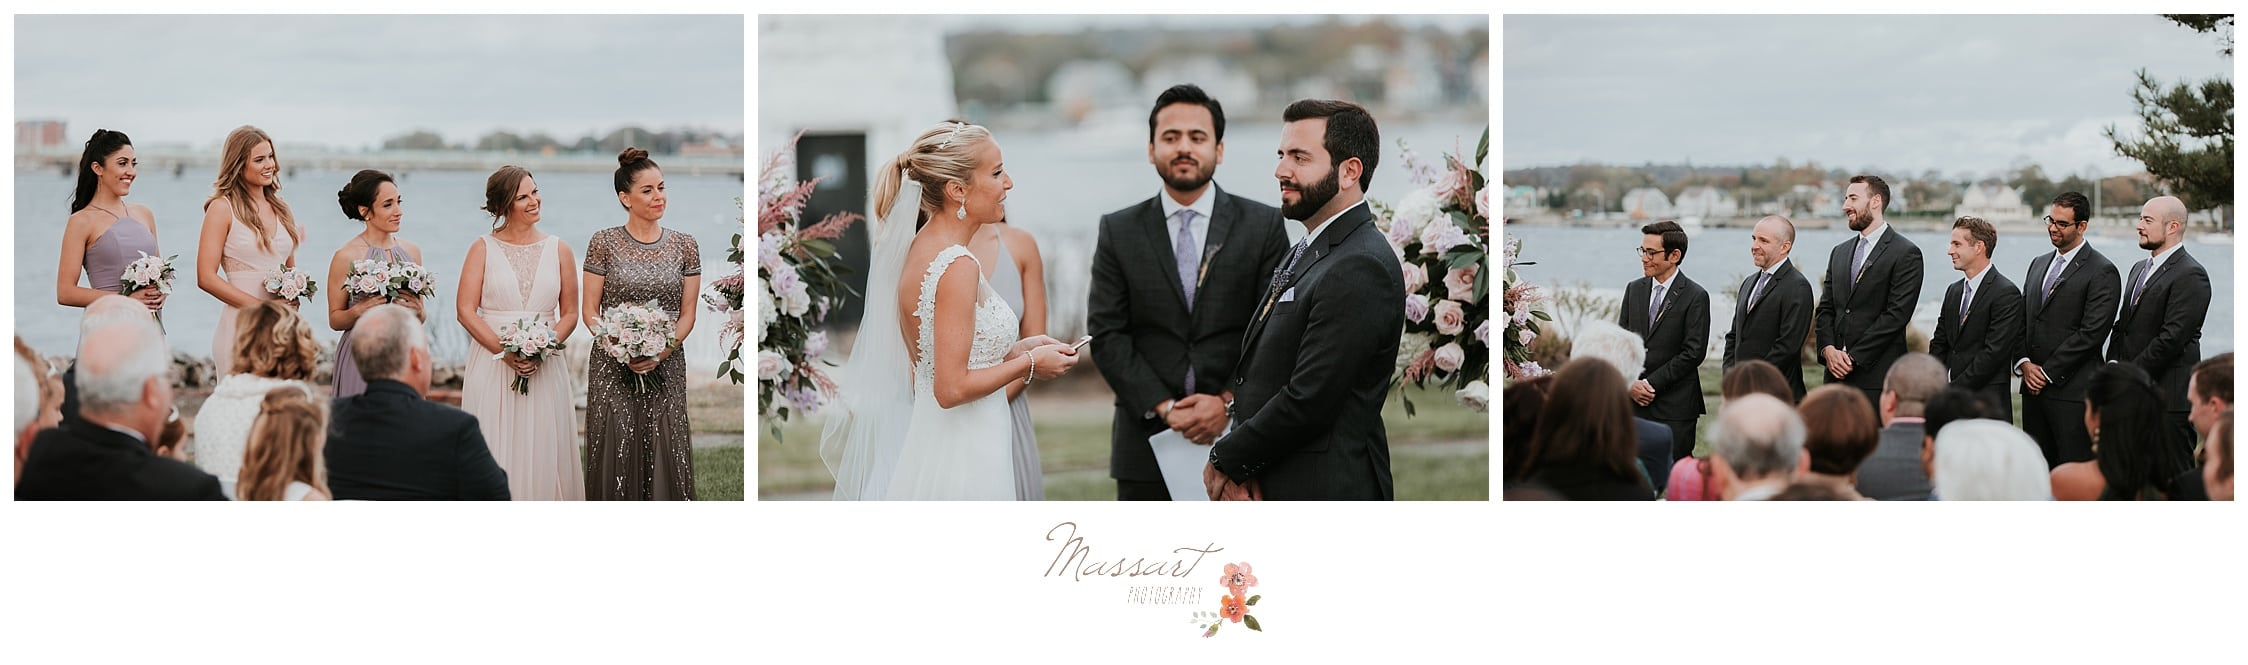 Bride and groom during their wedding ceremony photographed by Massart Photography Rhode Island